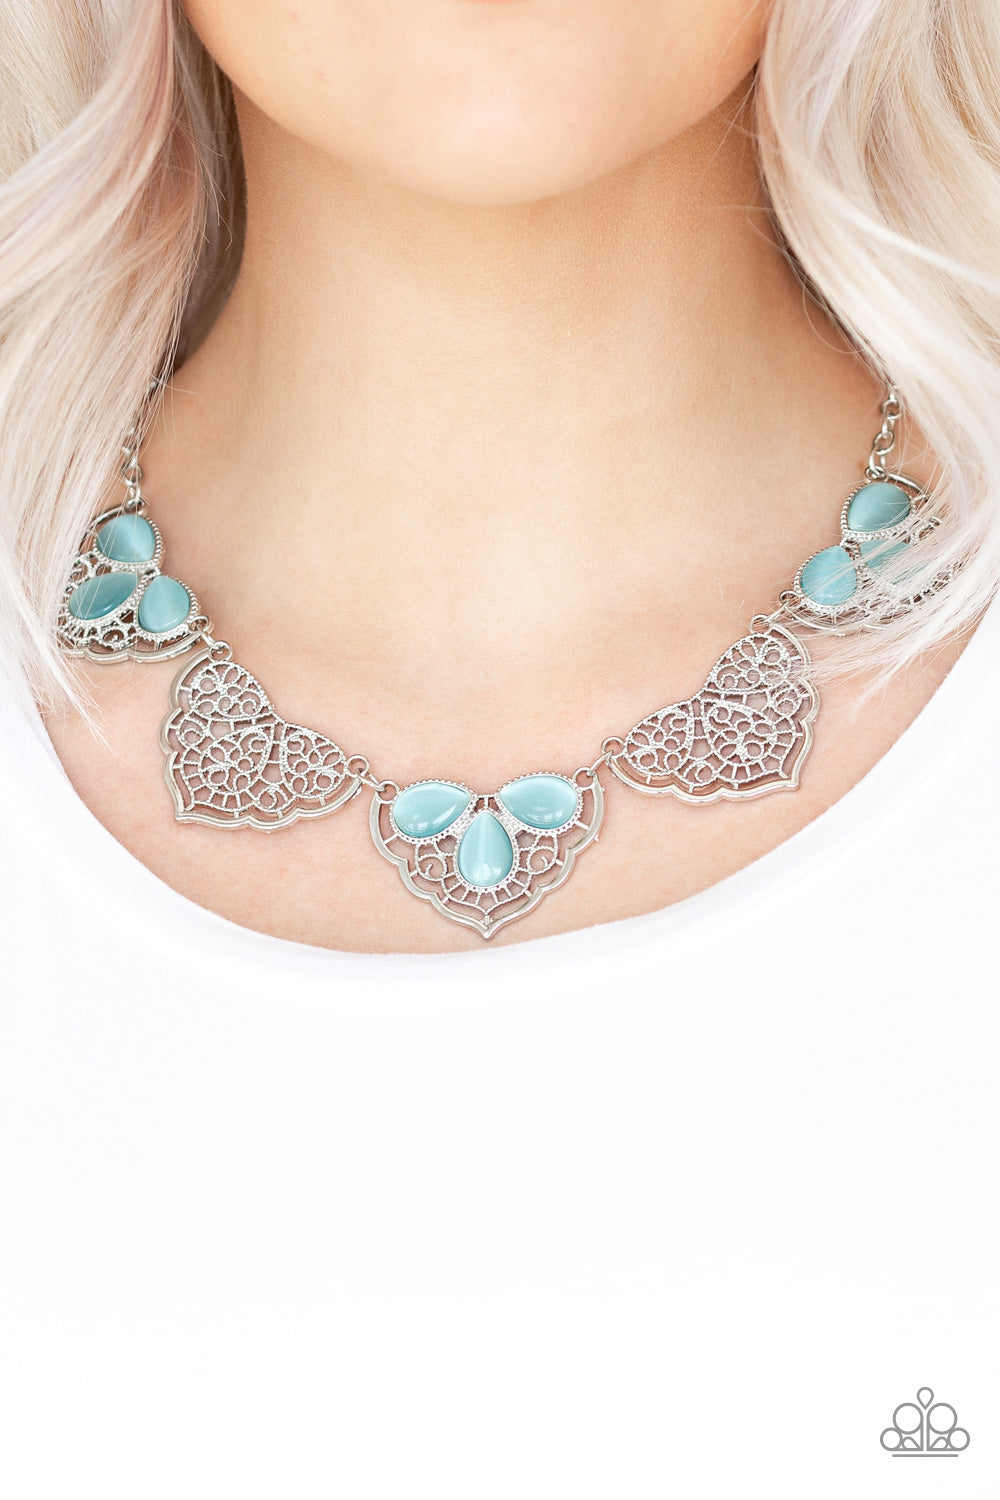 East Coast Essence - Blue Necklace